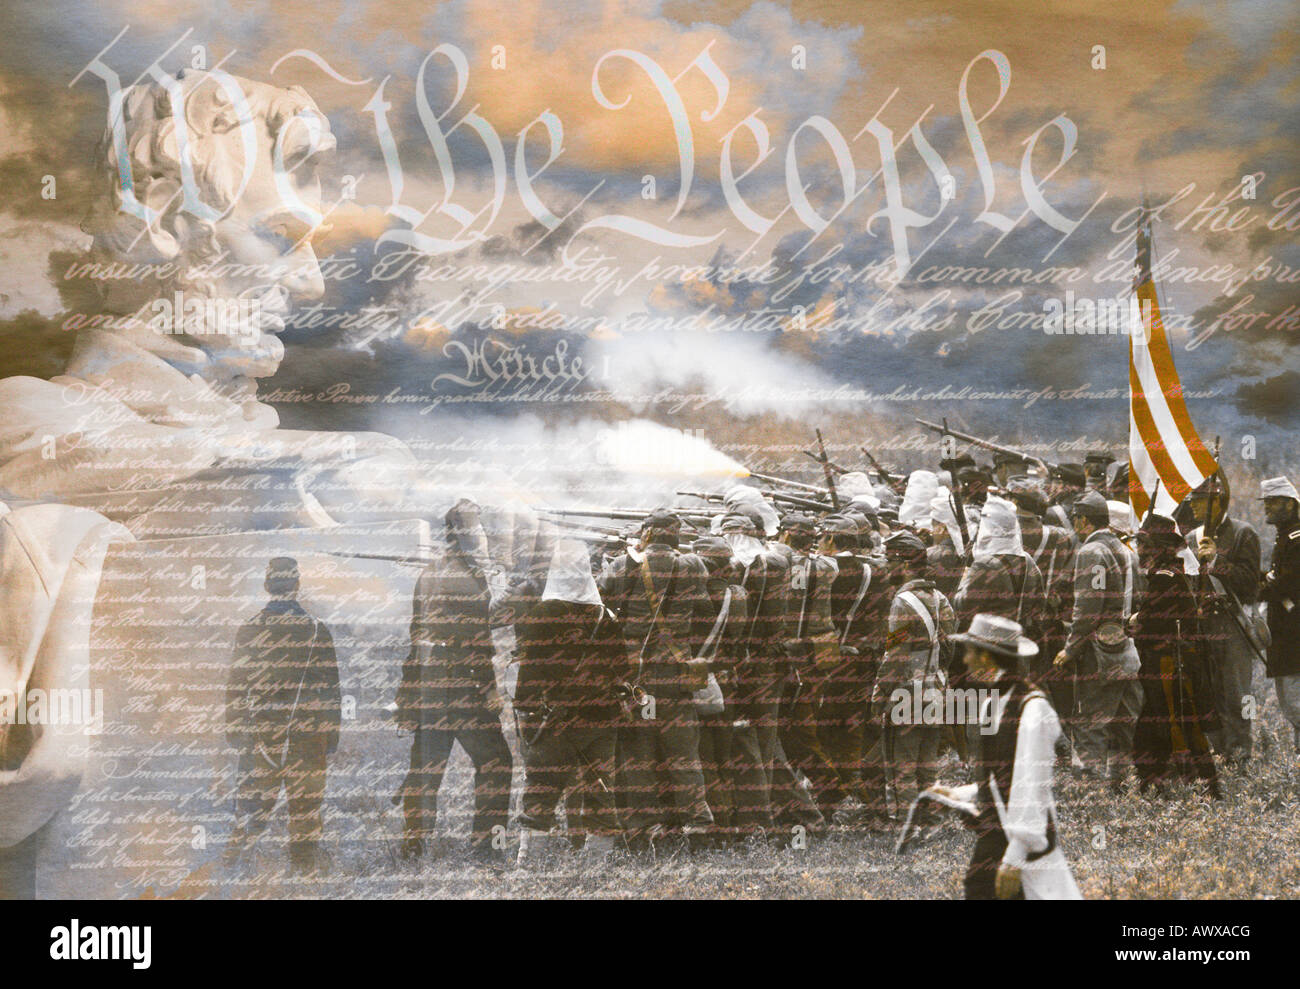 Composite image of Lincoln Memorial and Civil War soldiers in battle with U.S. Constitution - Stock Image